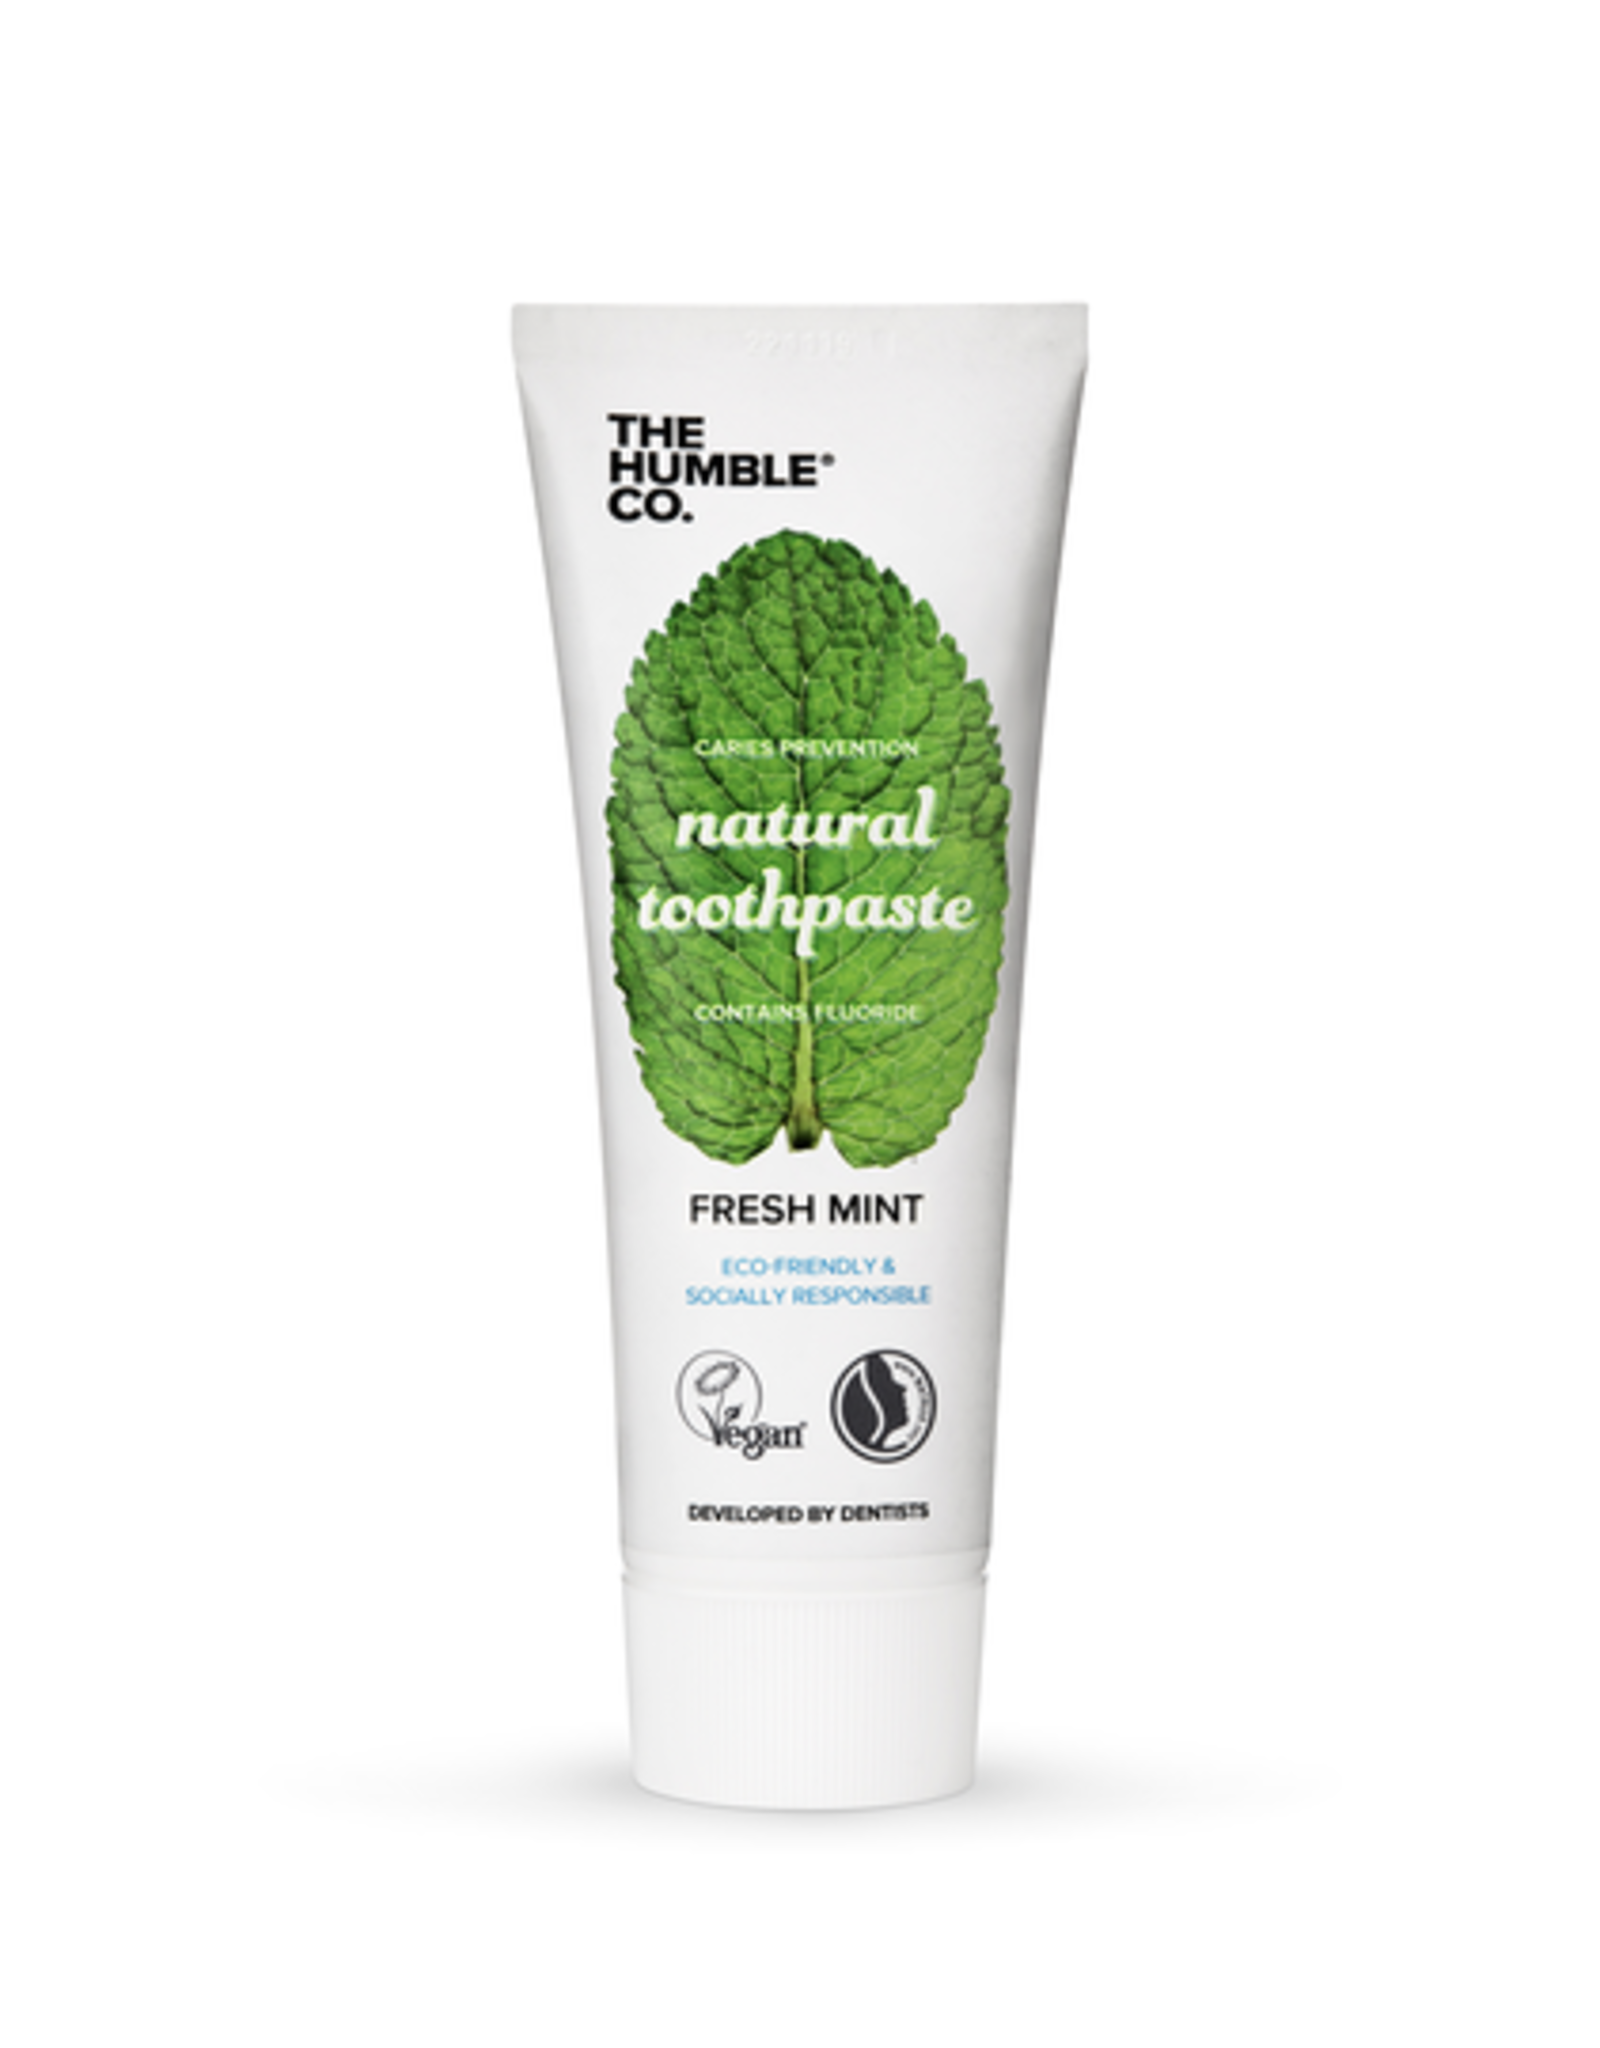 The Humble Co. Humble Natural Toothpaste Mint with Fluoride 75ml